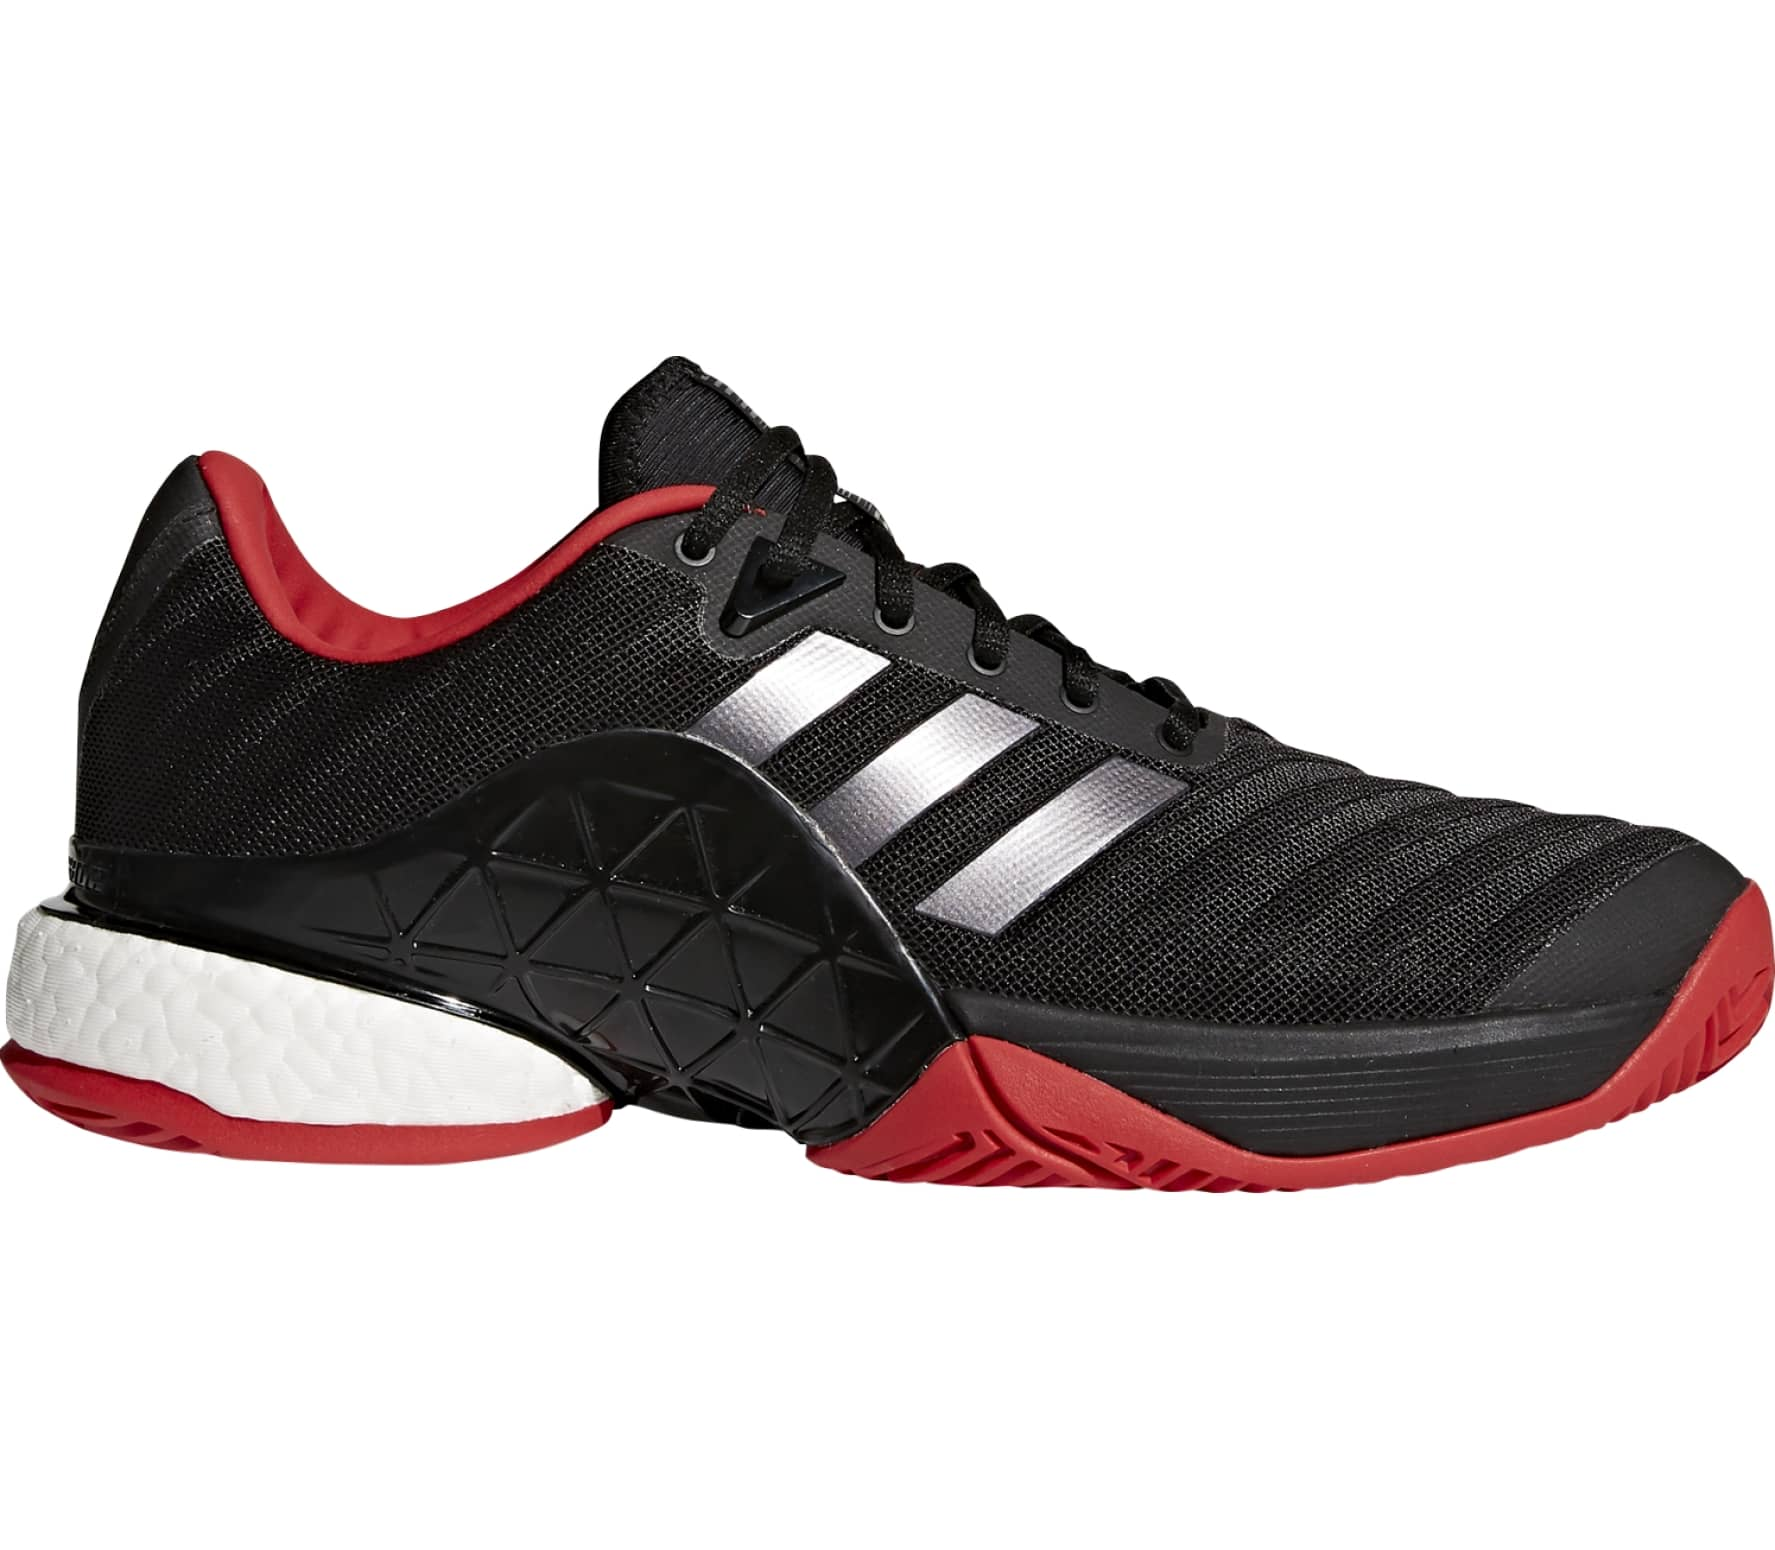 hot sale online be2ad c2d68 Adidas - Barricade 2018 Boost men s tennis shoes (black red)